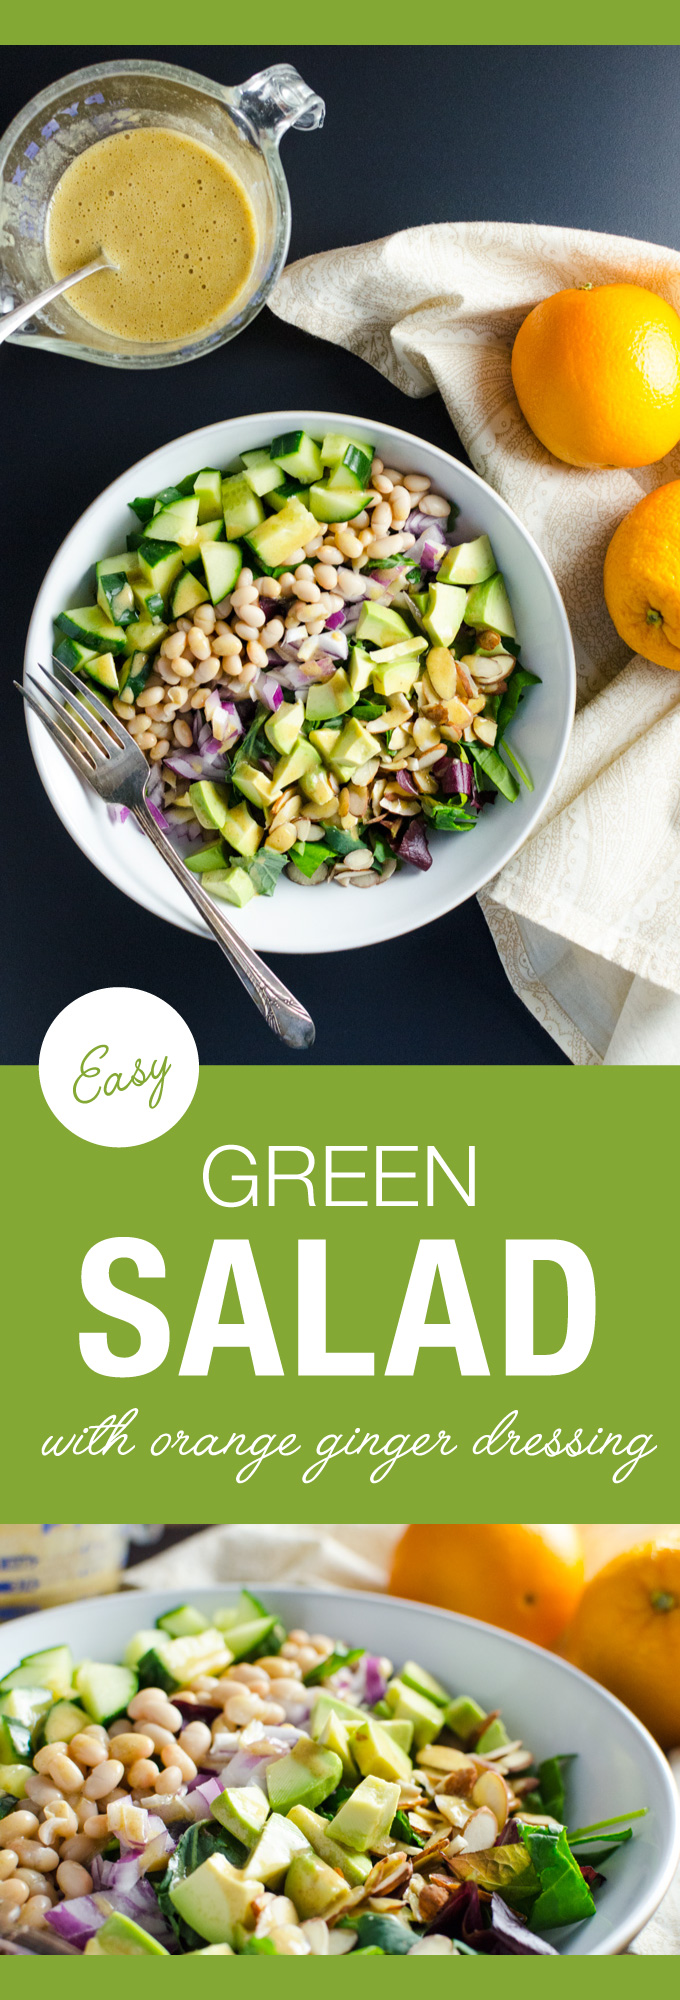 Easy Green Salad with Orange Ginger Dressing - just a few minutes of chopping and blending deliver a healthy plant-based vegan gluten-free meal! | VeggiePrimer.com